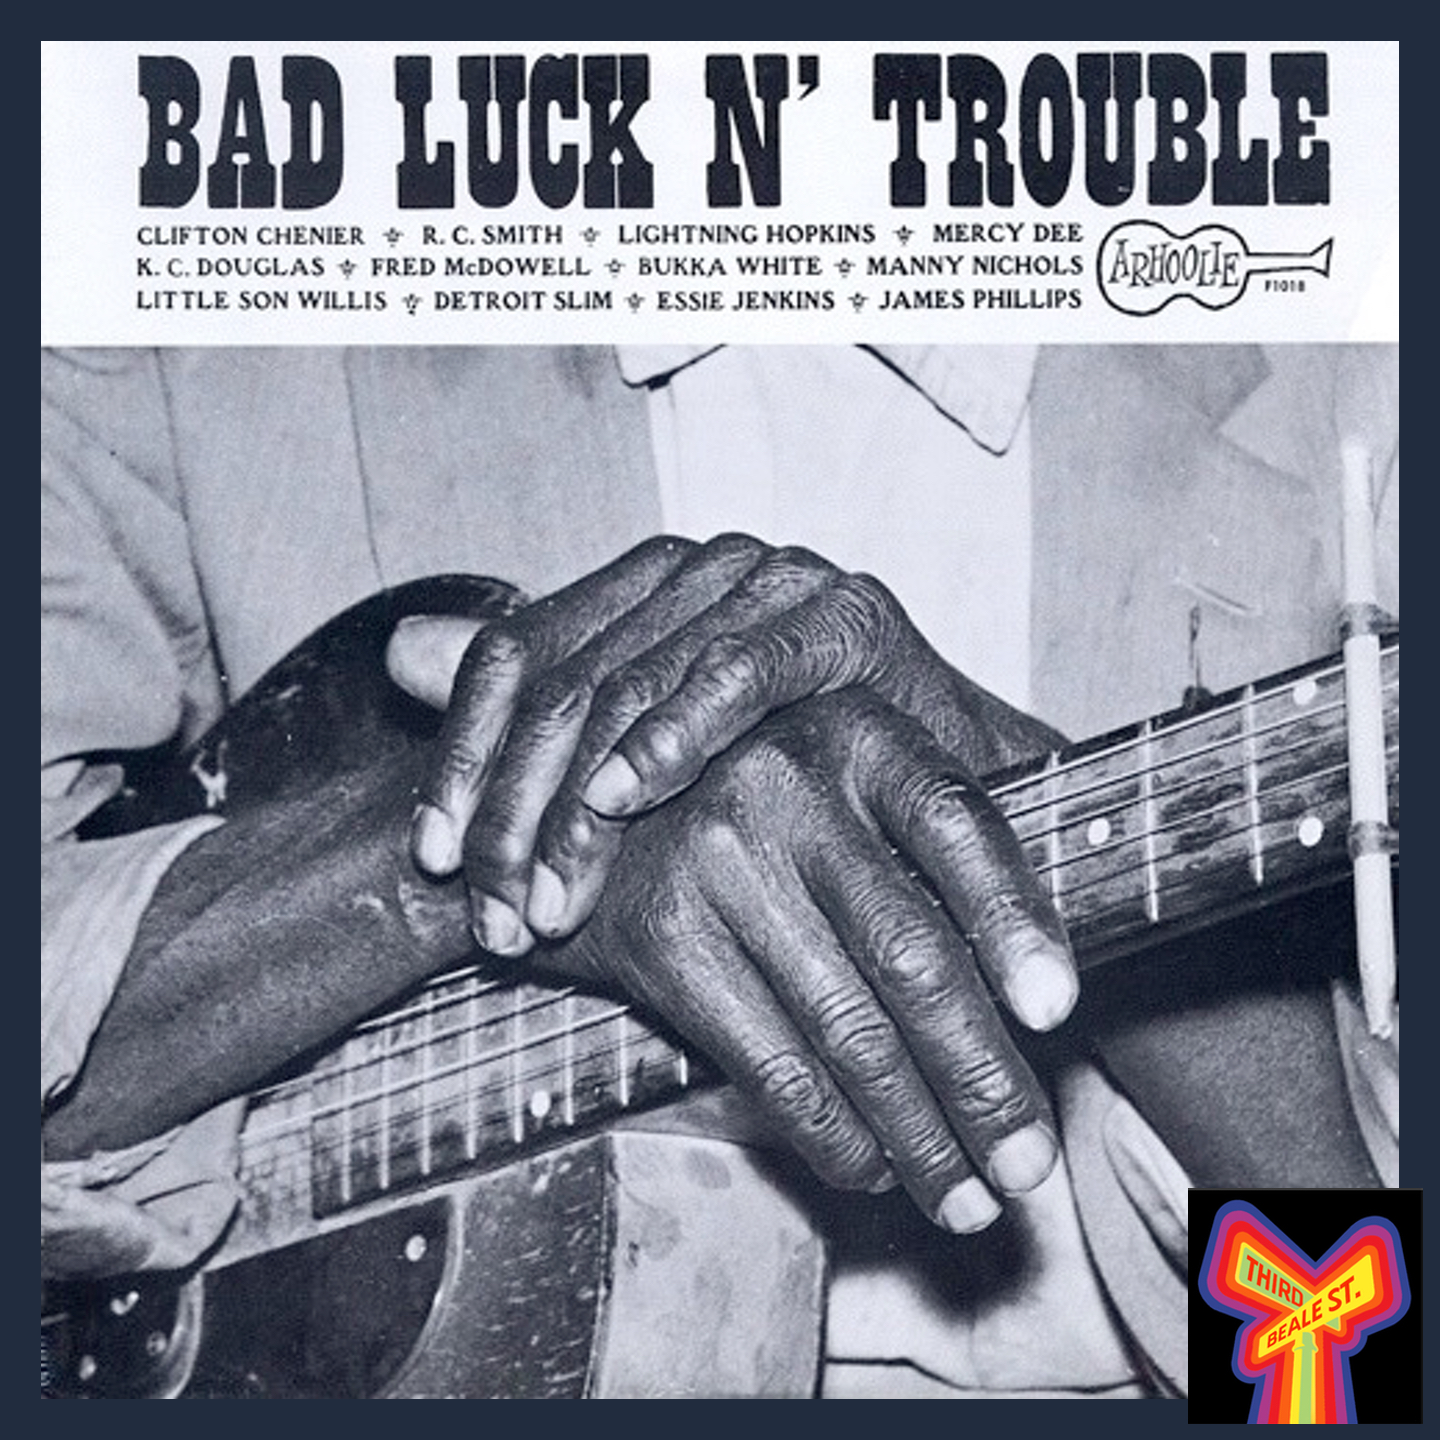 """Caption: The distinctive cover of Arhoolie LP 1018, """"Bad Luck N' Trouble"""""""